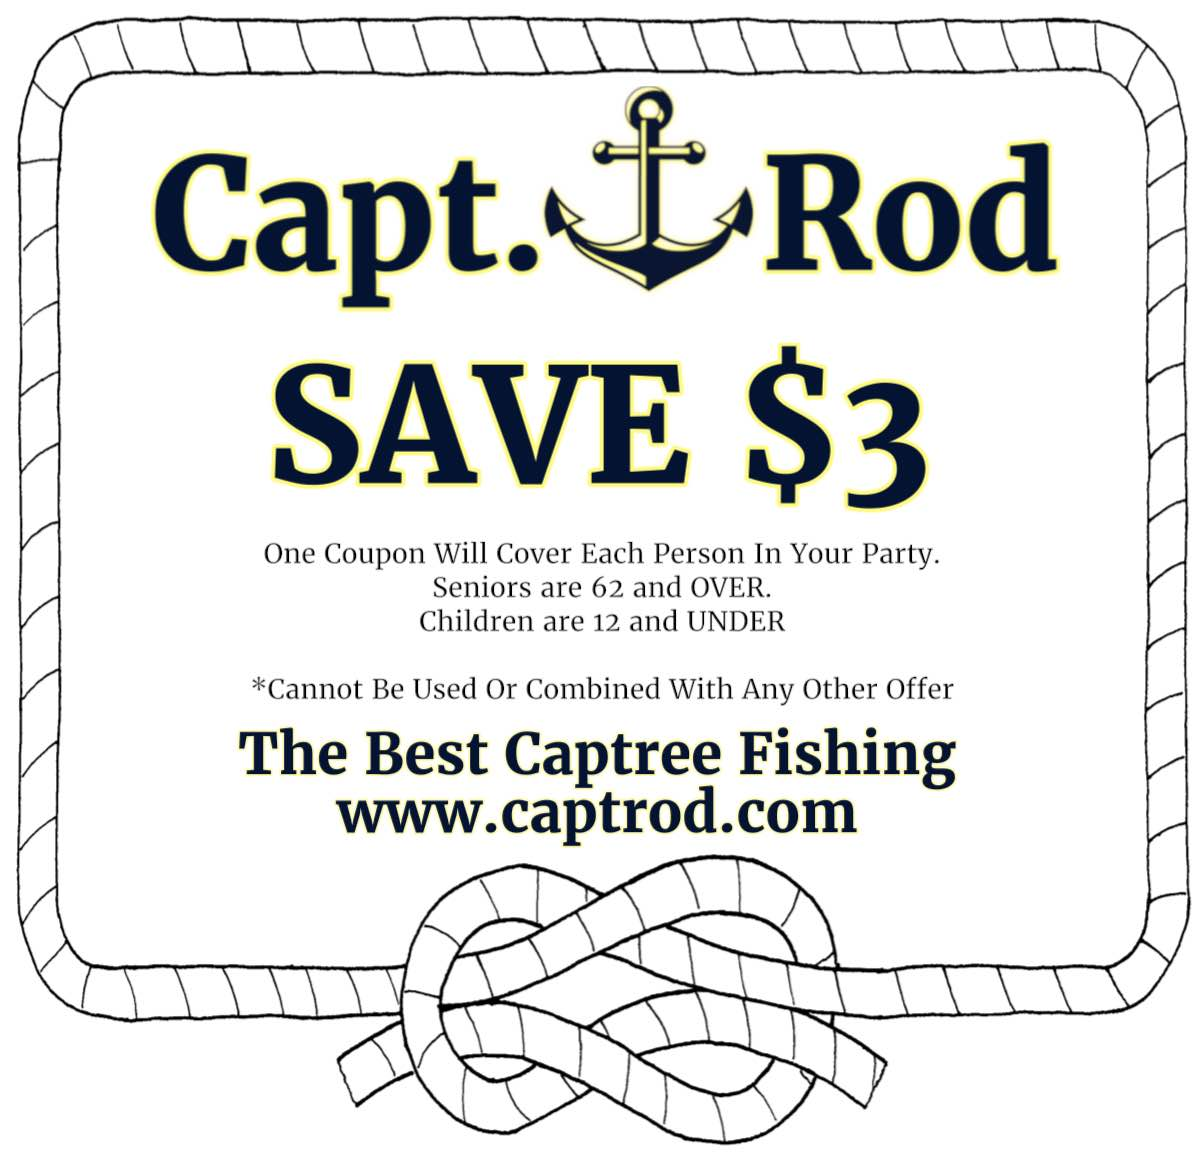 Capt. Rod Coupon